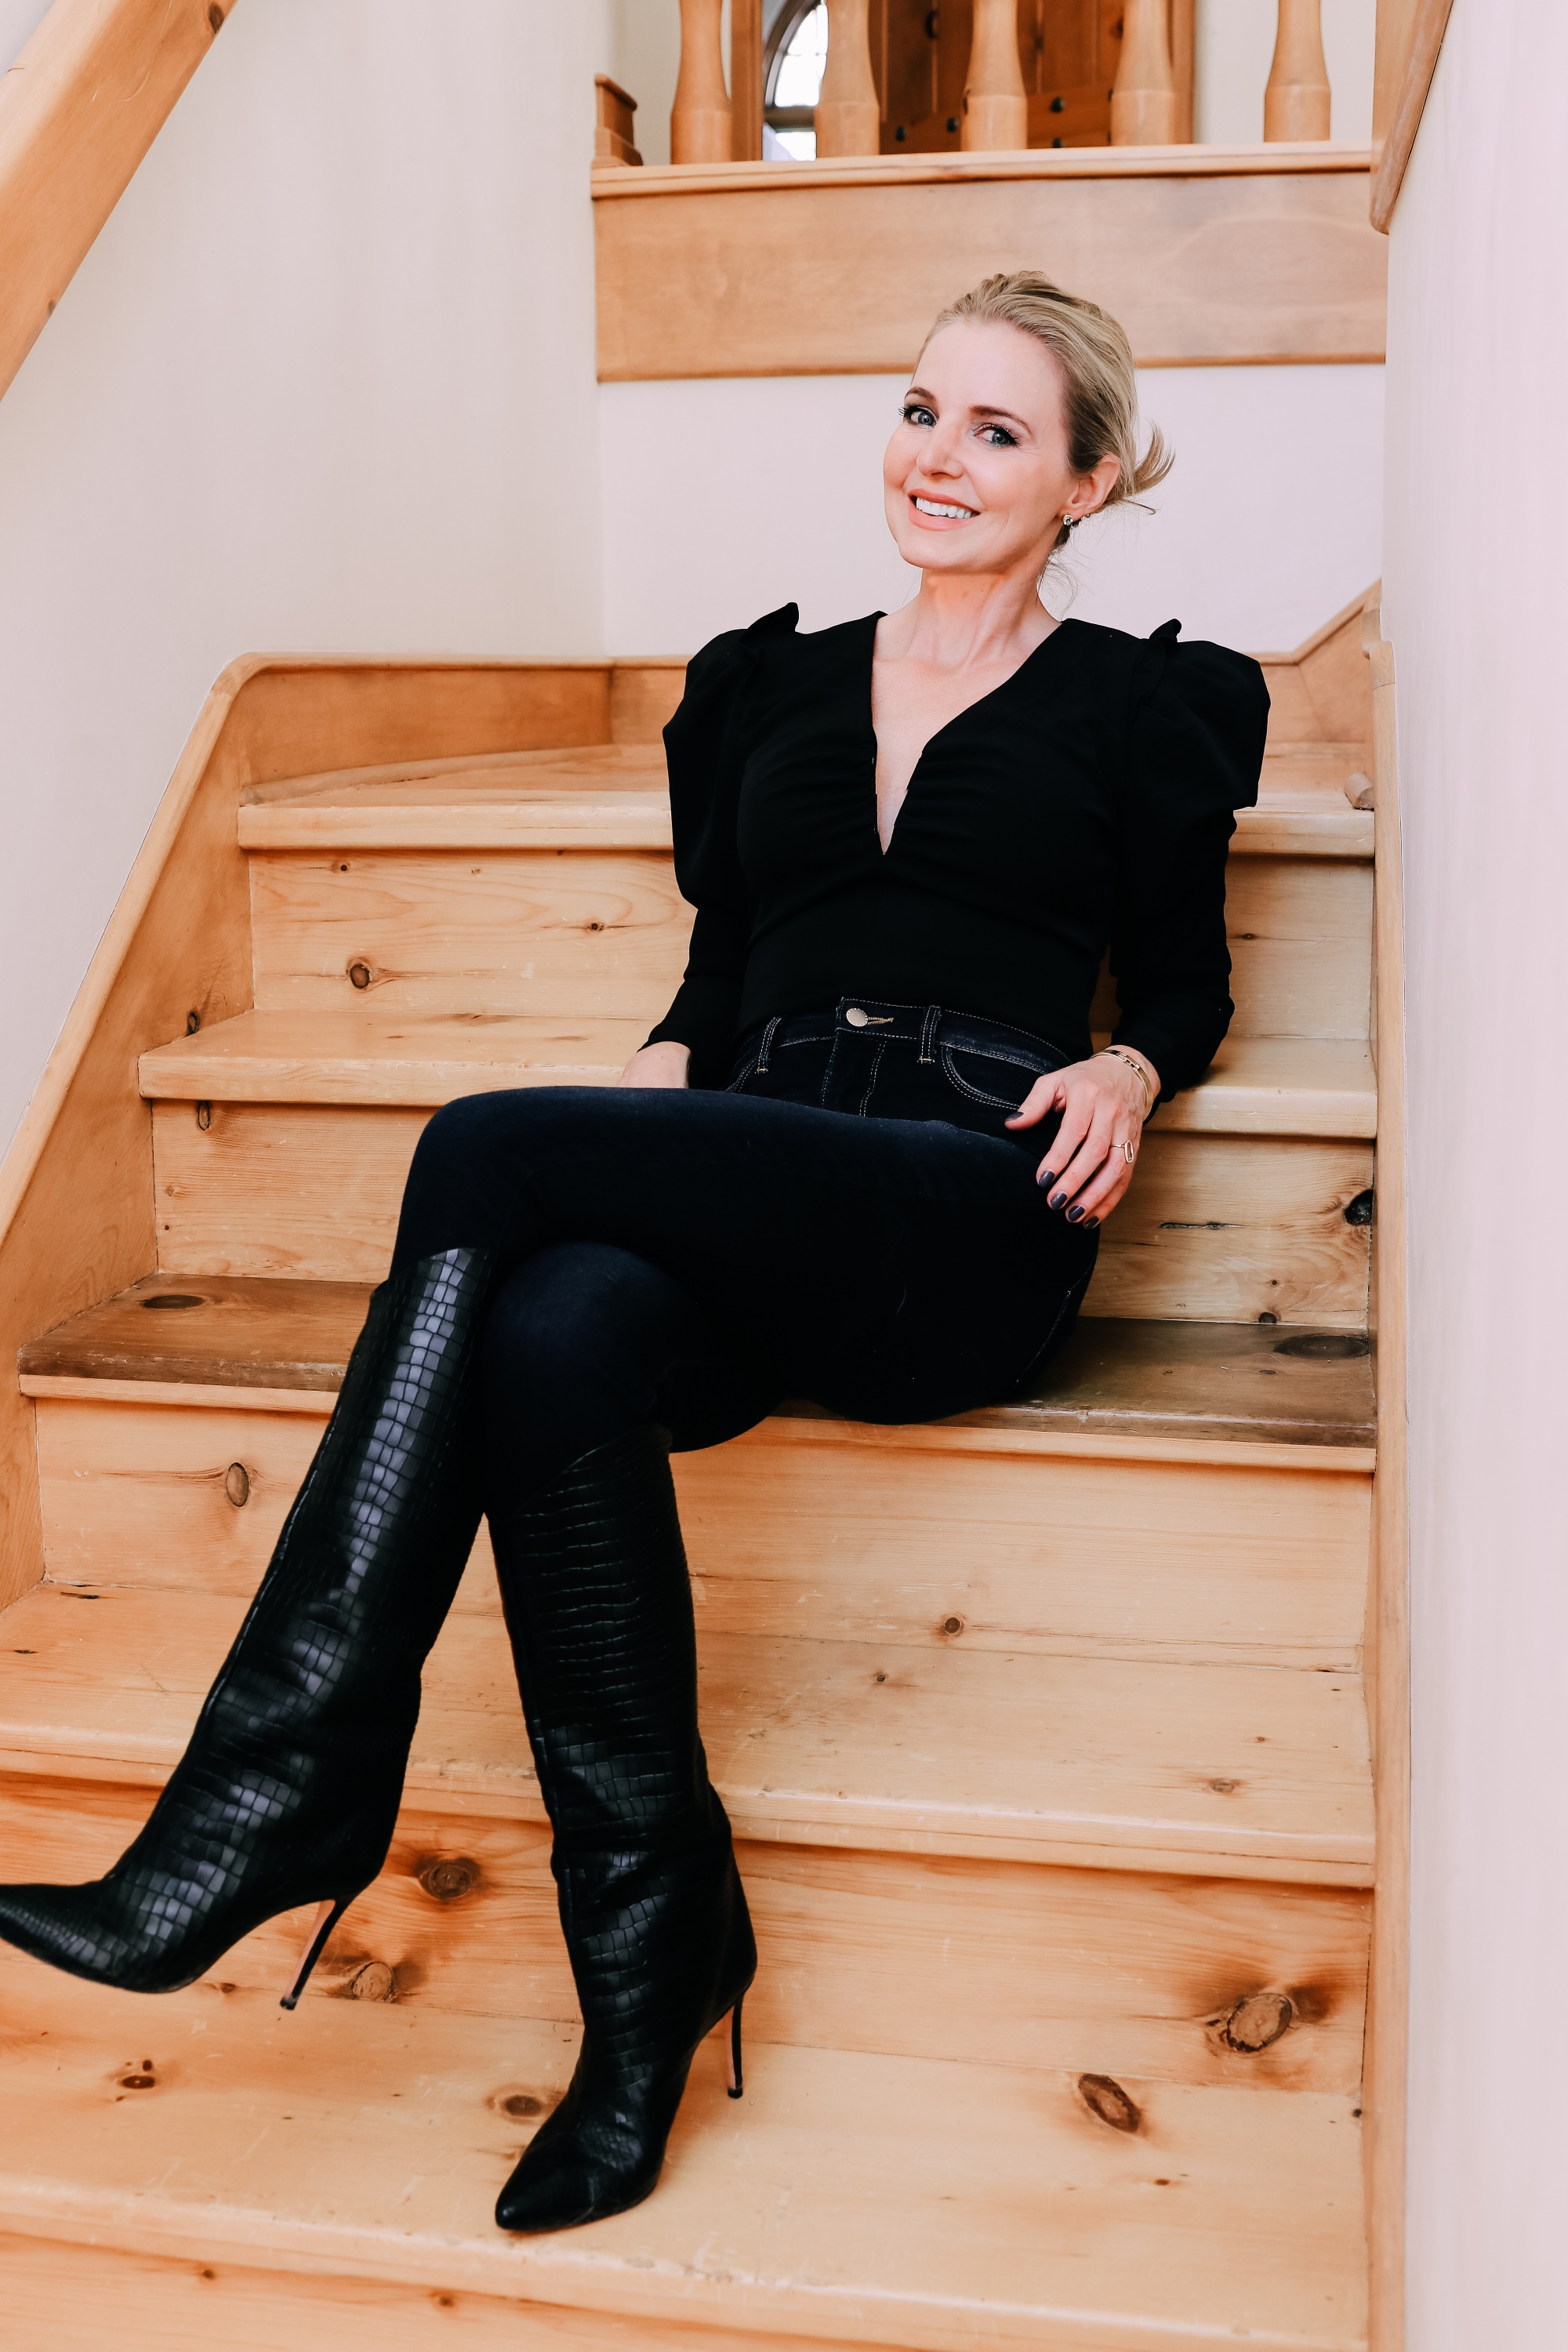 Holiday Outfits With Jeans, Erin Busbee of Busbee Style wearing a black ASTR the Label puff sleeve bodysuit, L'Agence dark wash skinny jeans, and black snake embossed boots by Schutz from Nordstrom sitting on the stairs in Telluride, Colorado